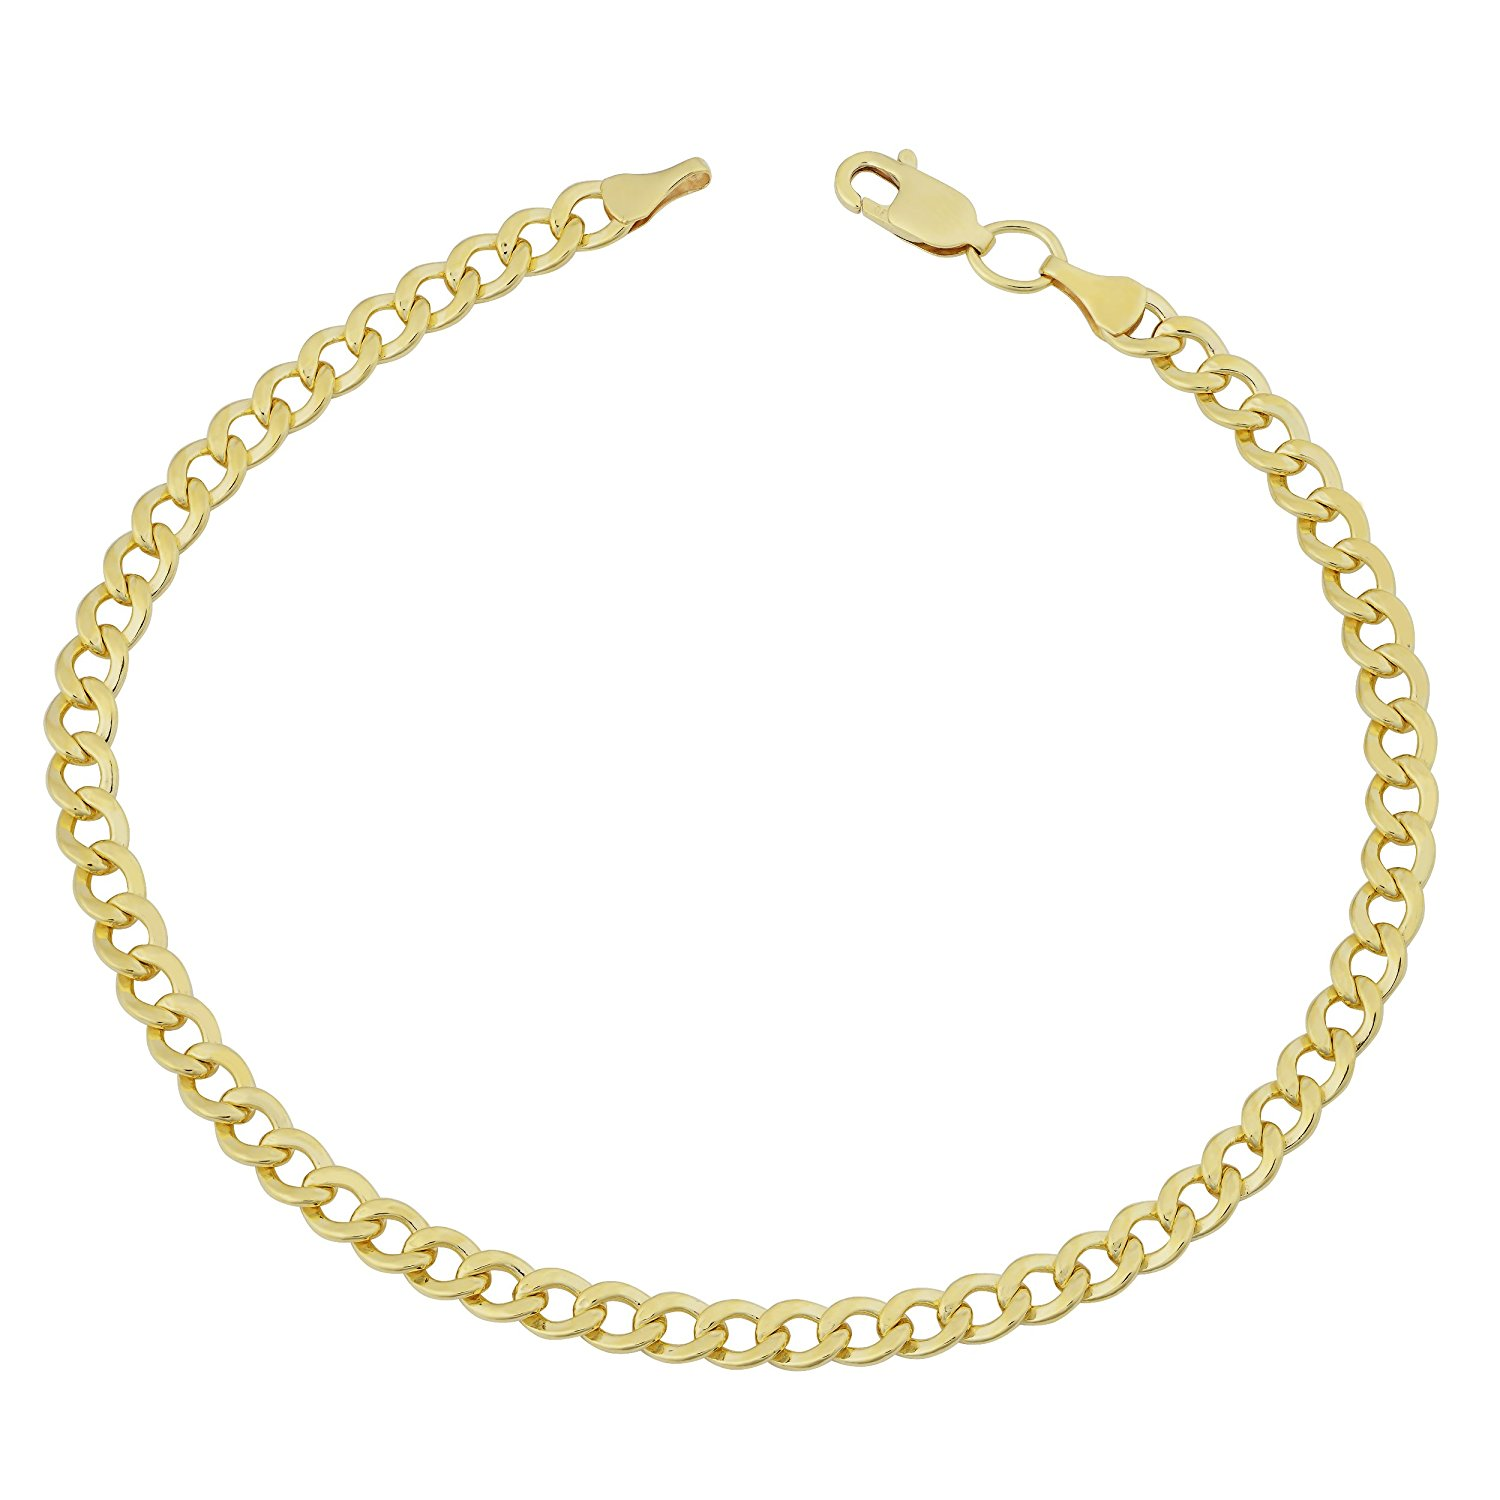 14K Yellow Gold Filled Solid Curb Chain Bracelet, 3.6mm, 8.5″